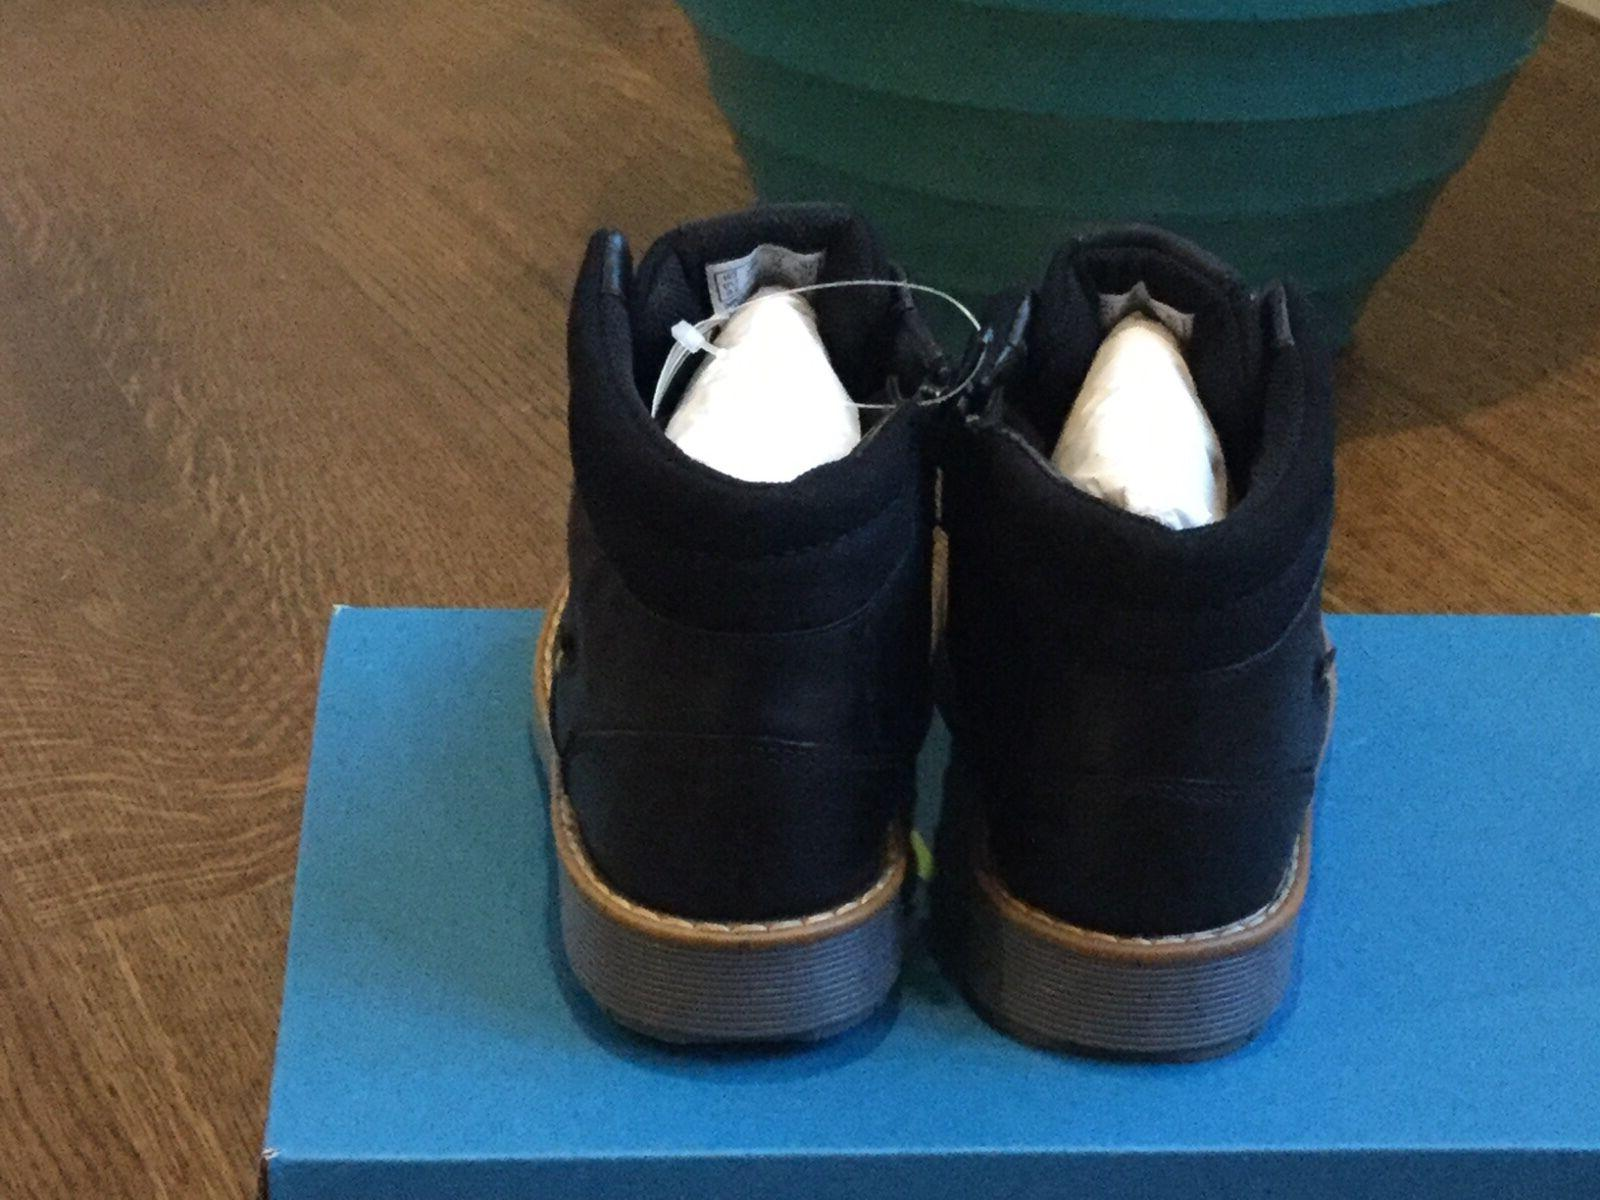 Nwt Clarks Boots Boys size